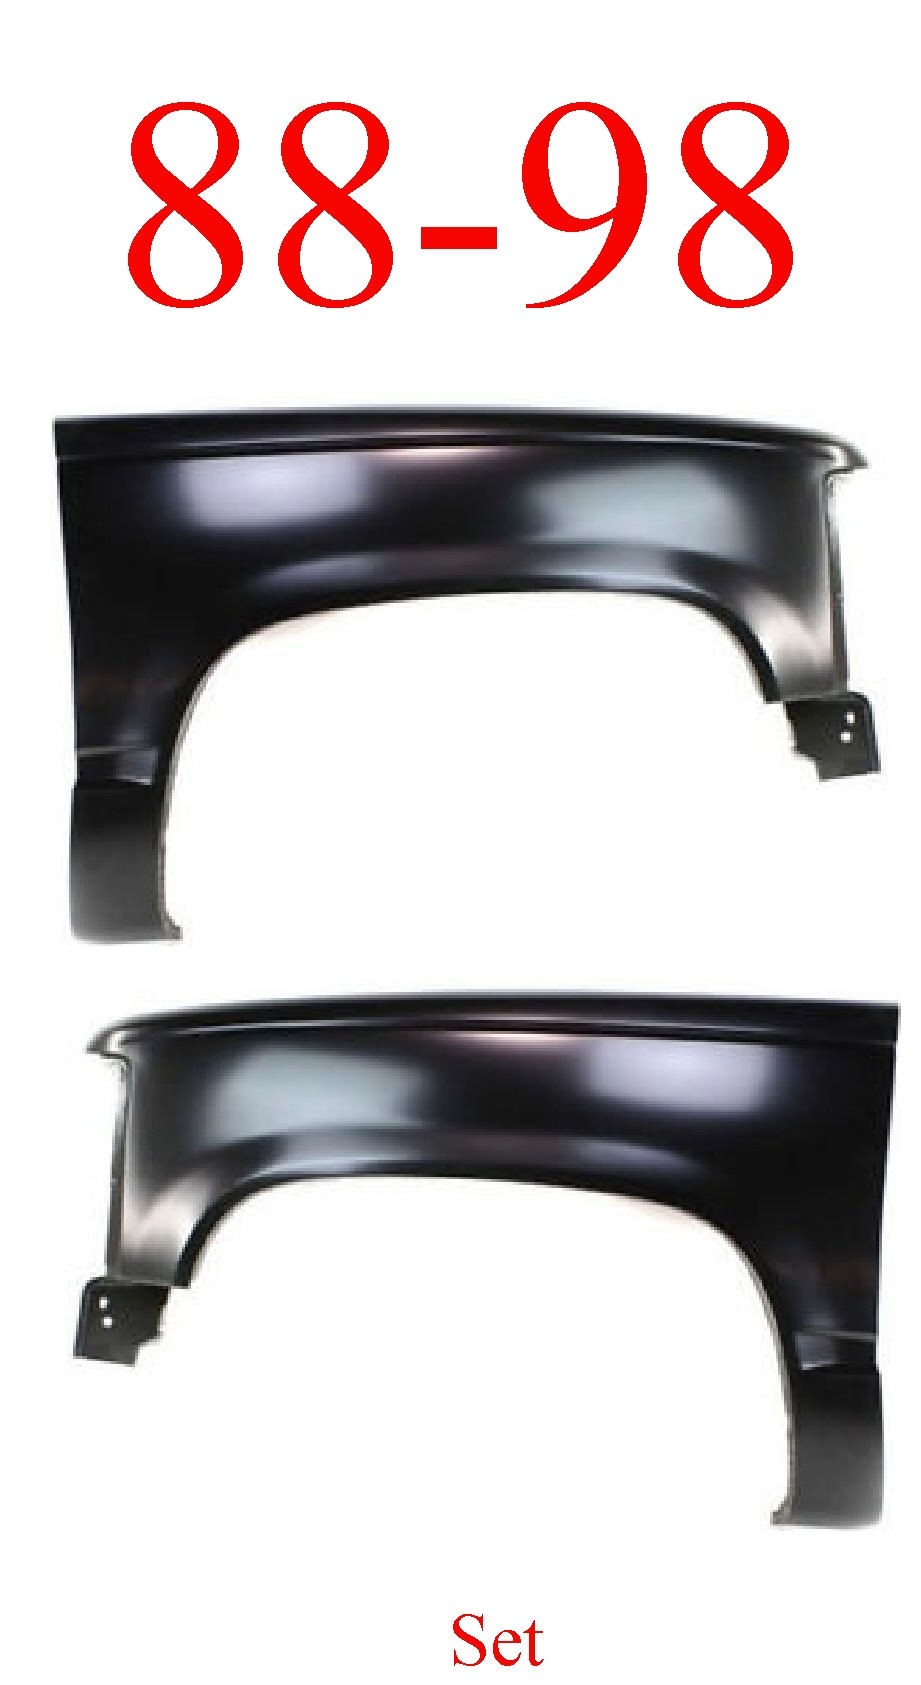 88-98 Chevy Front Fender Set